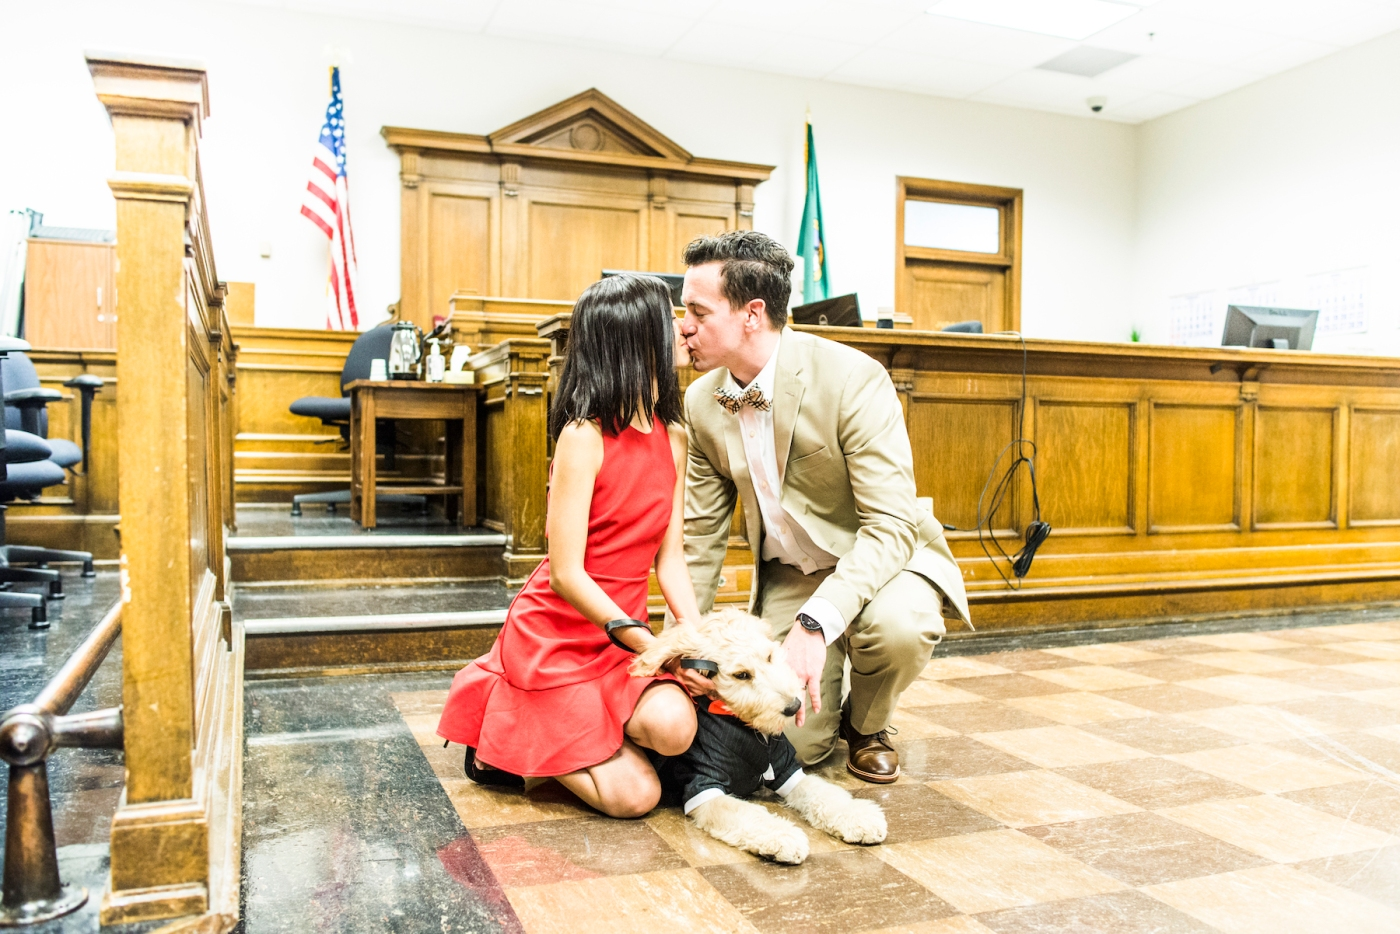 photography_by_jane_speleers_2017_seattle_court_house_wedding-dsc_9152